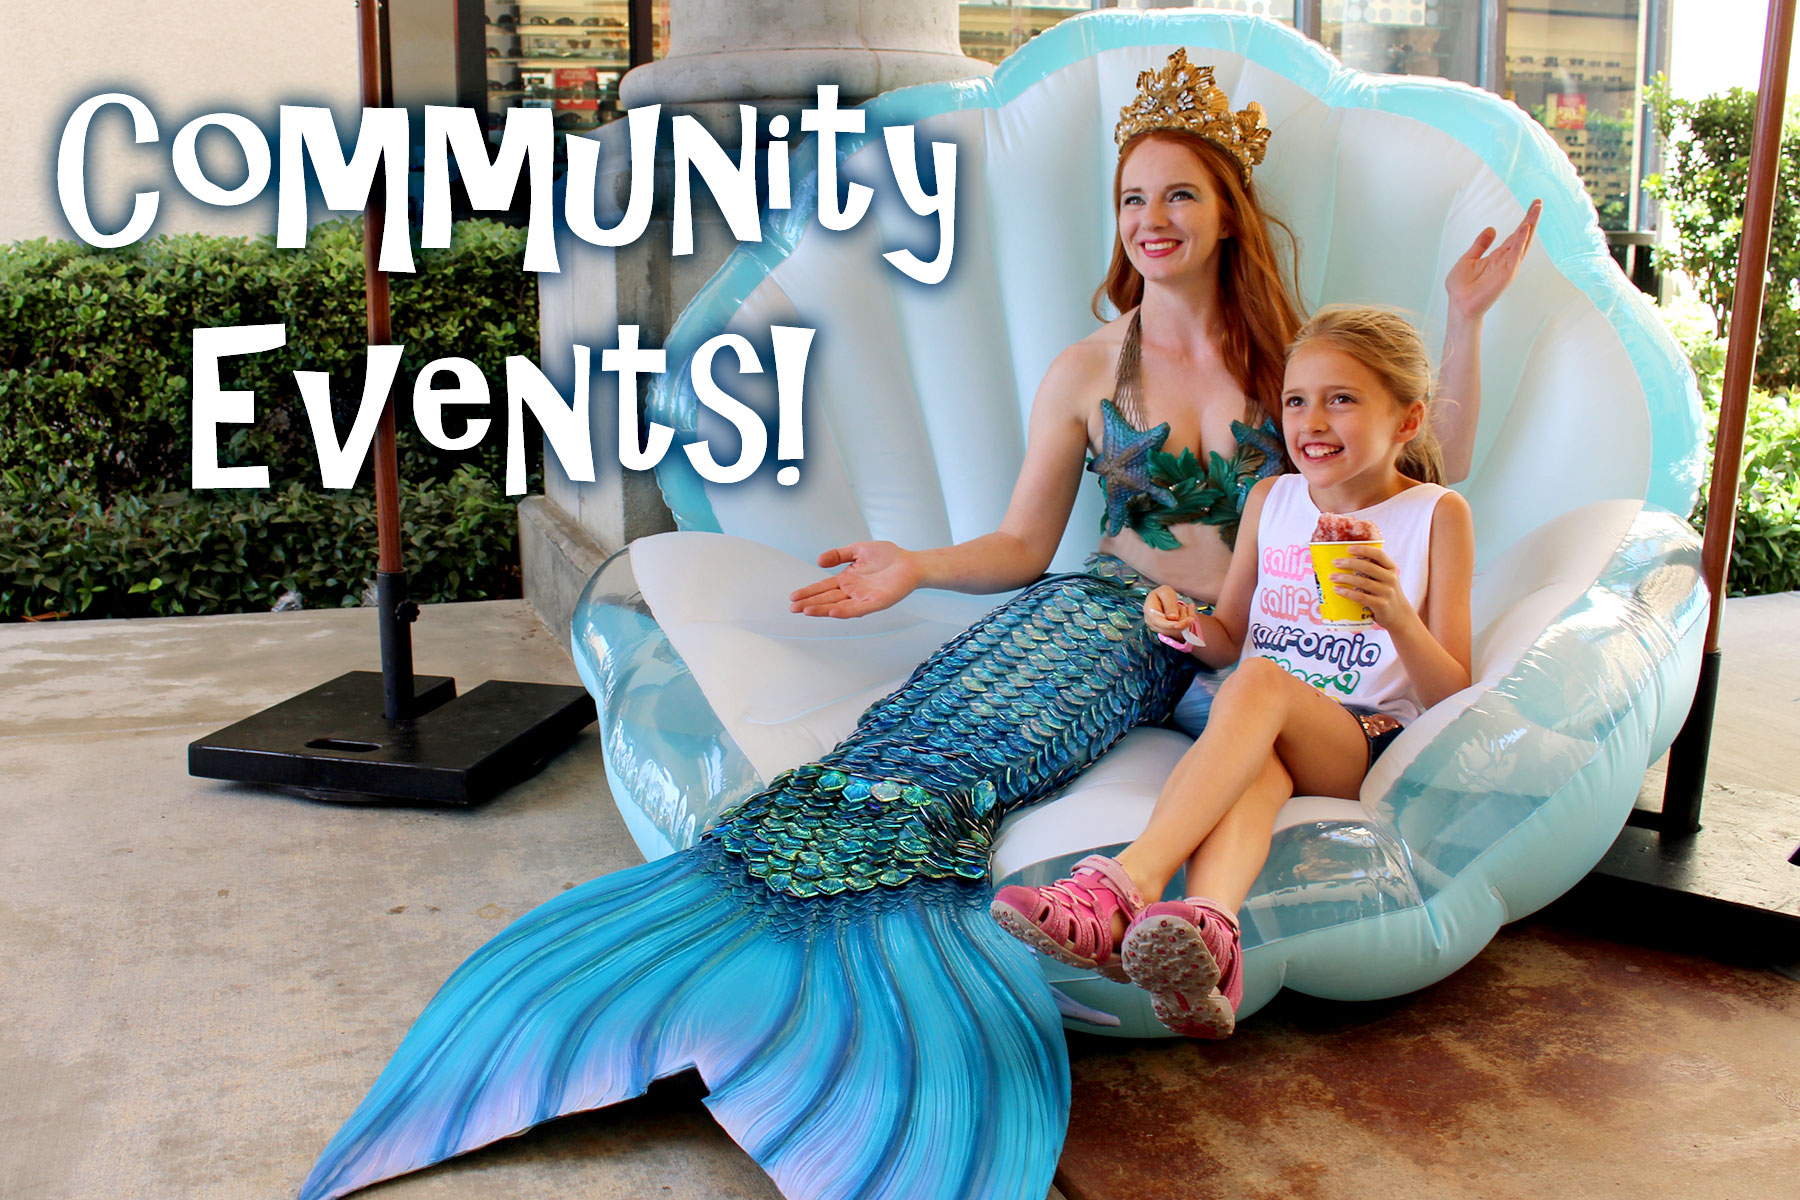 Catalina Mermaid  in a sequin-style tail with optional shell rental posing fora fin-credible community event!